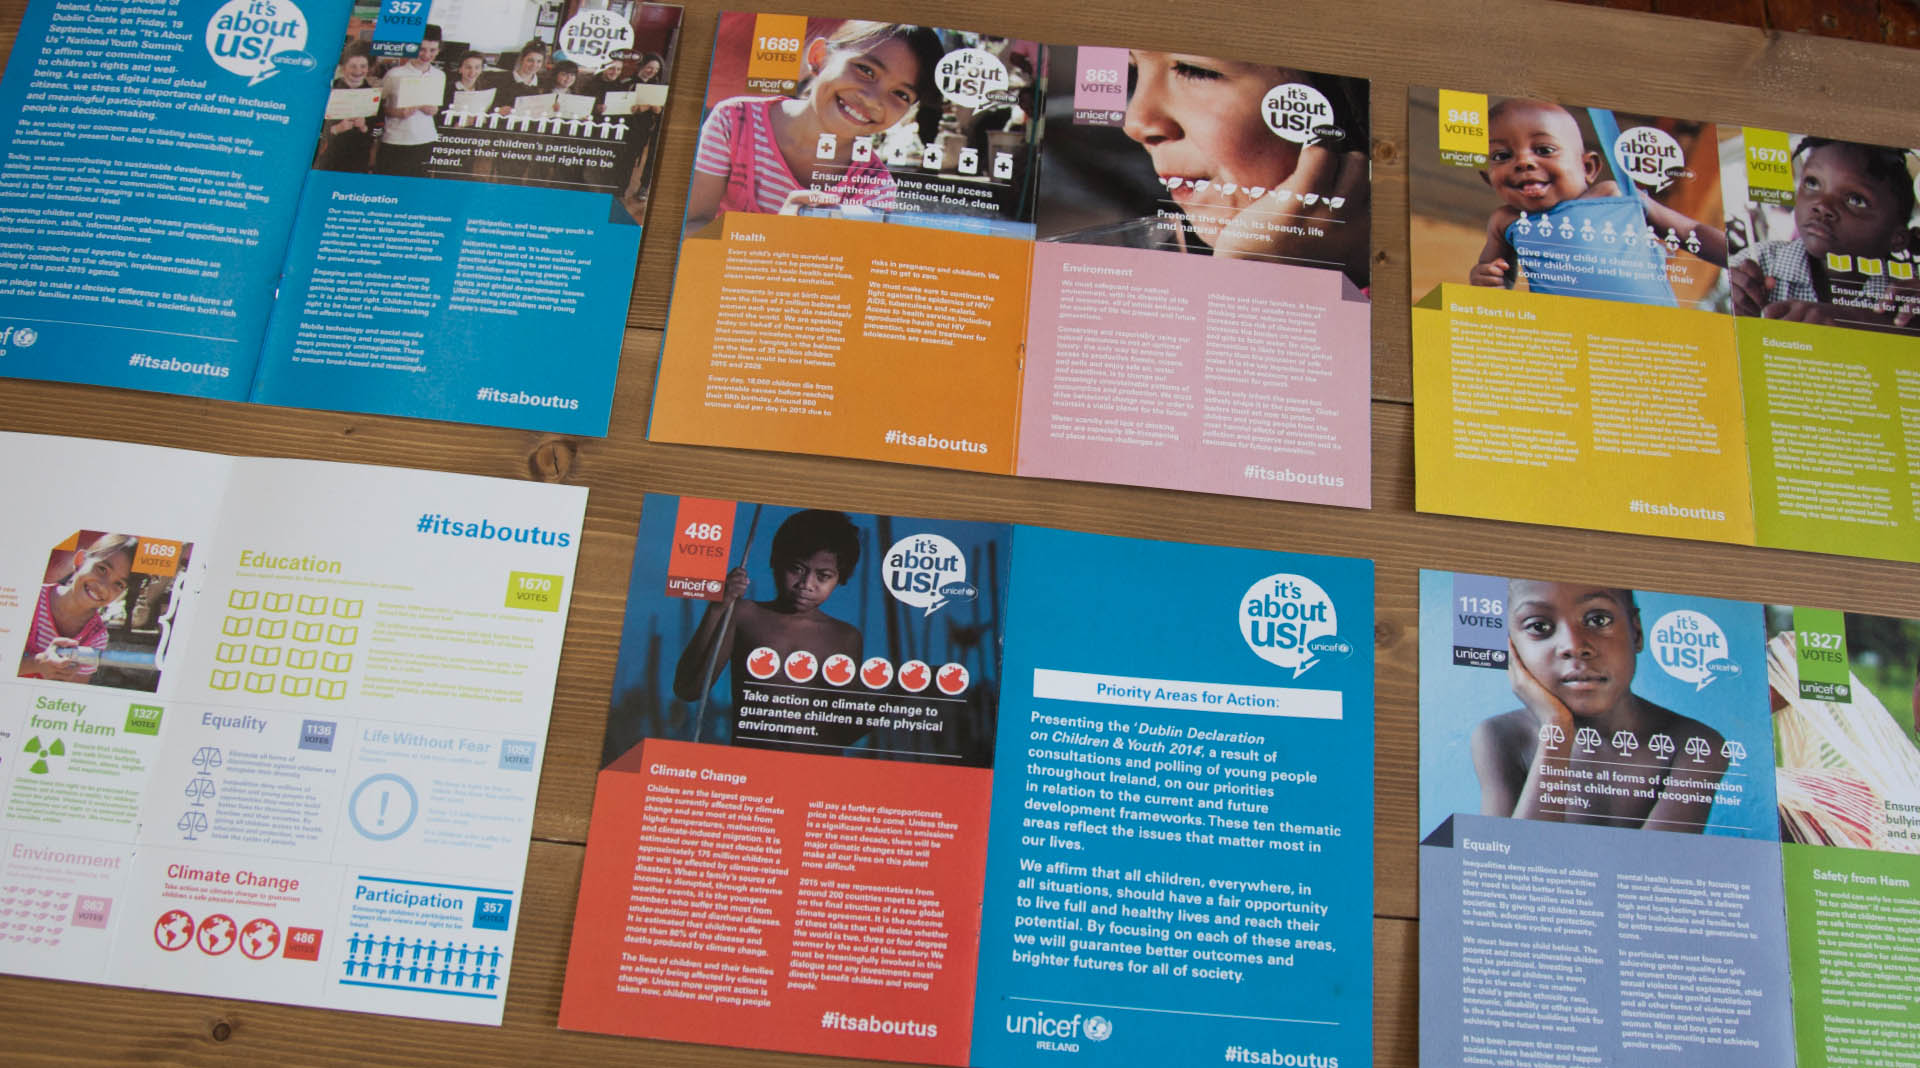 Unicef Its About Us brochure